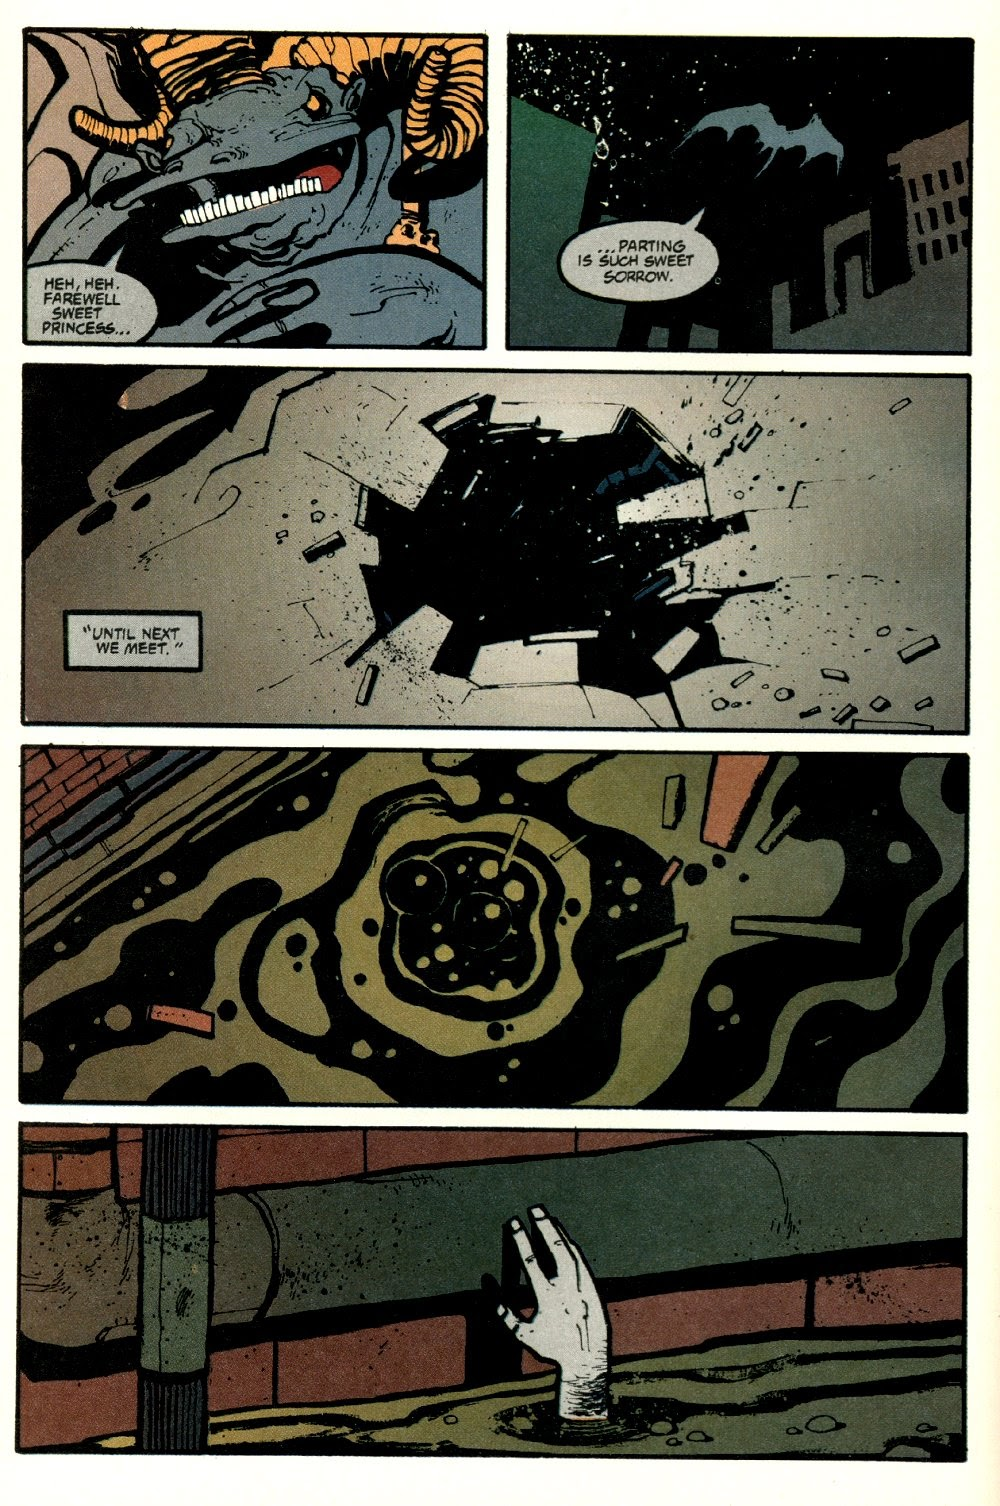 Read online Ted McKeever's Metropol comic -  Issue #8 - 24